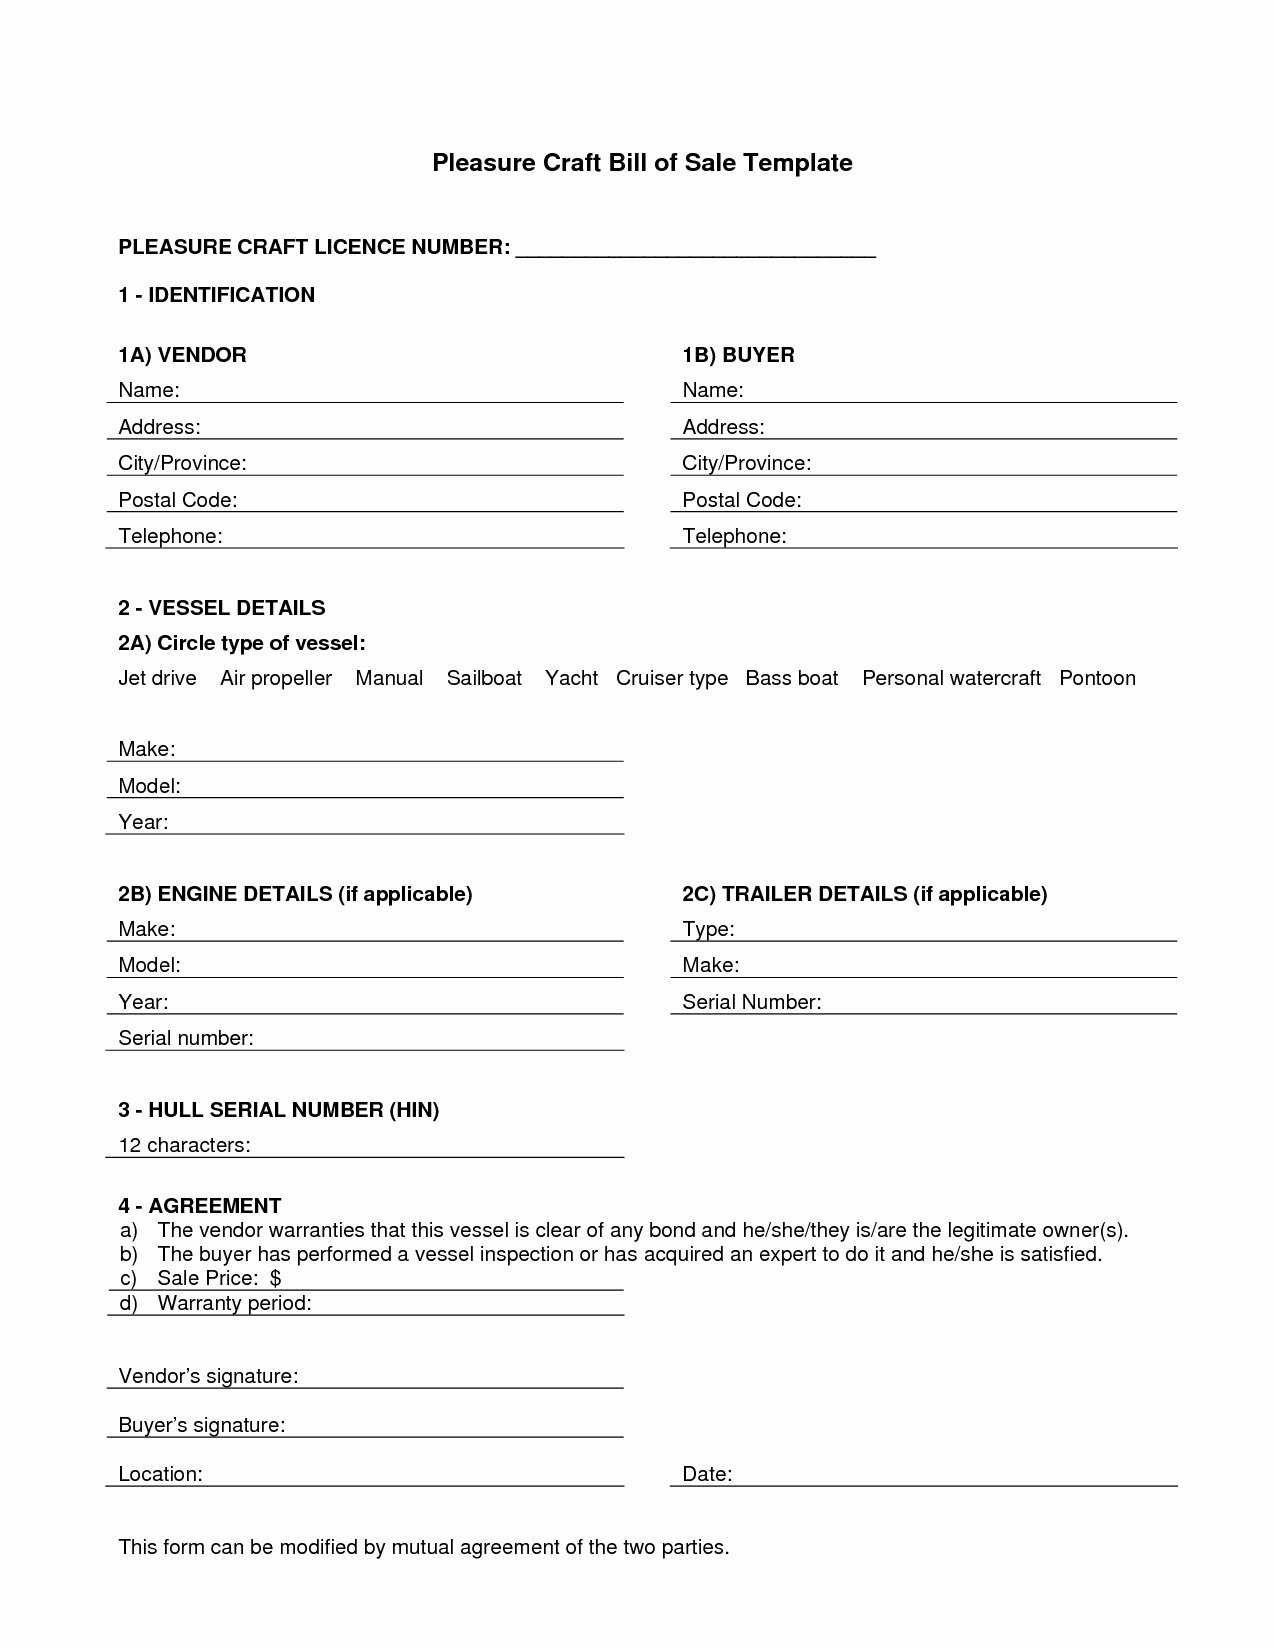 Travel Trailer Bill Of Sale New Camper Bill Sale form Free Free Printable Documents